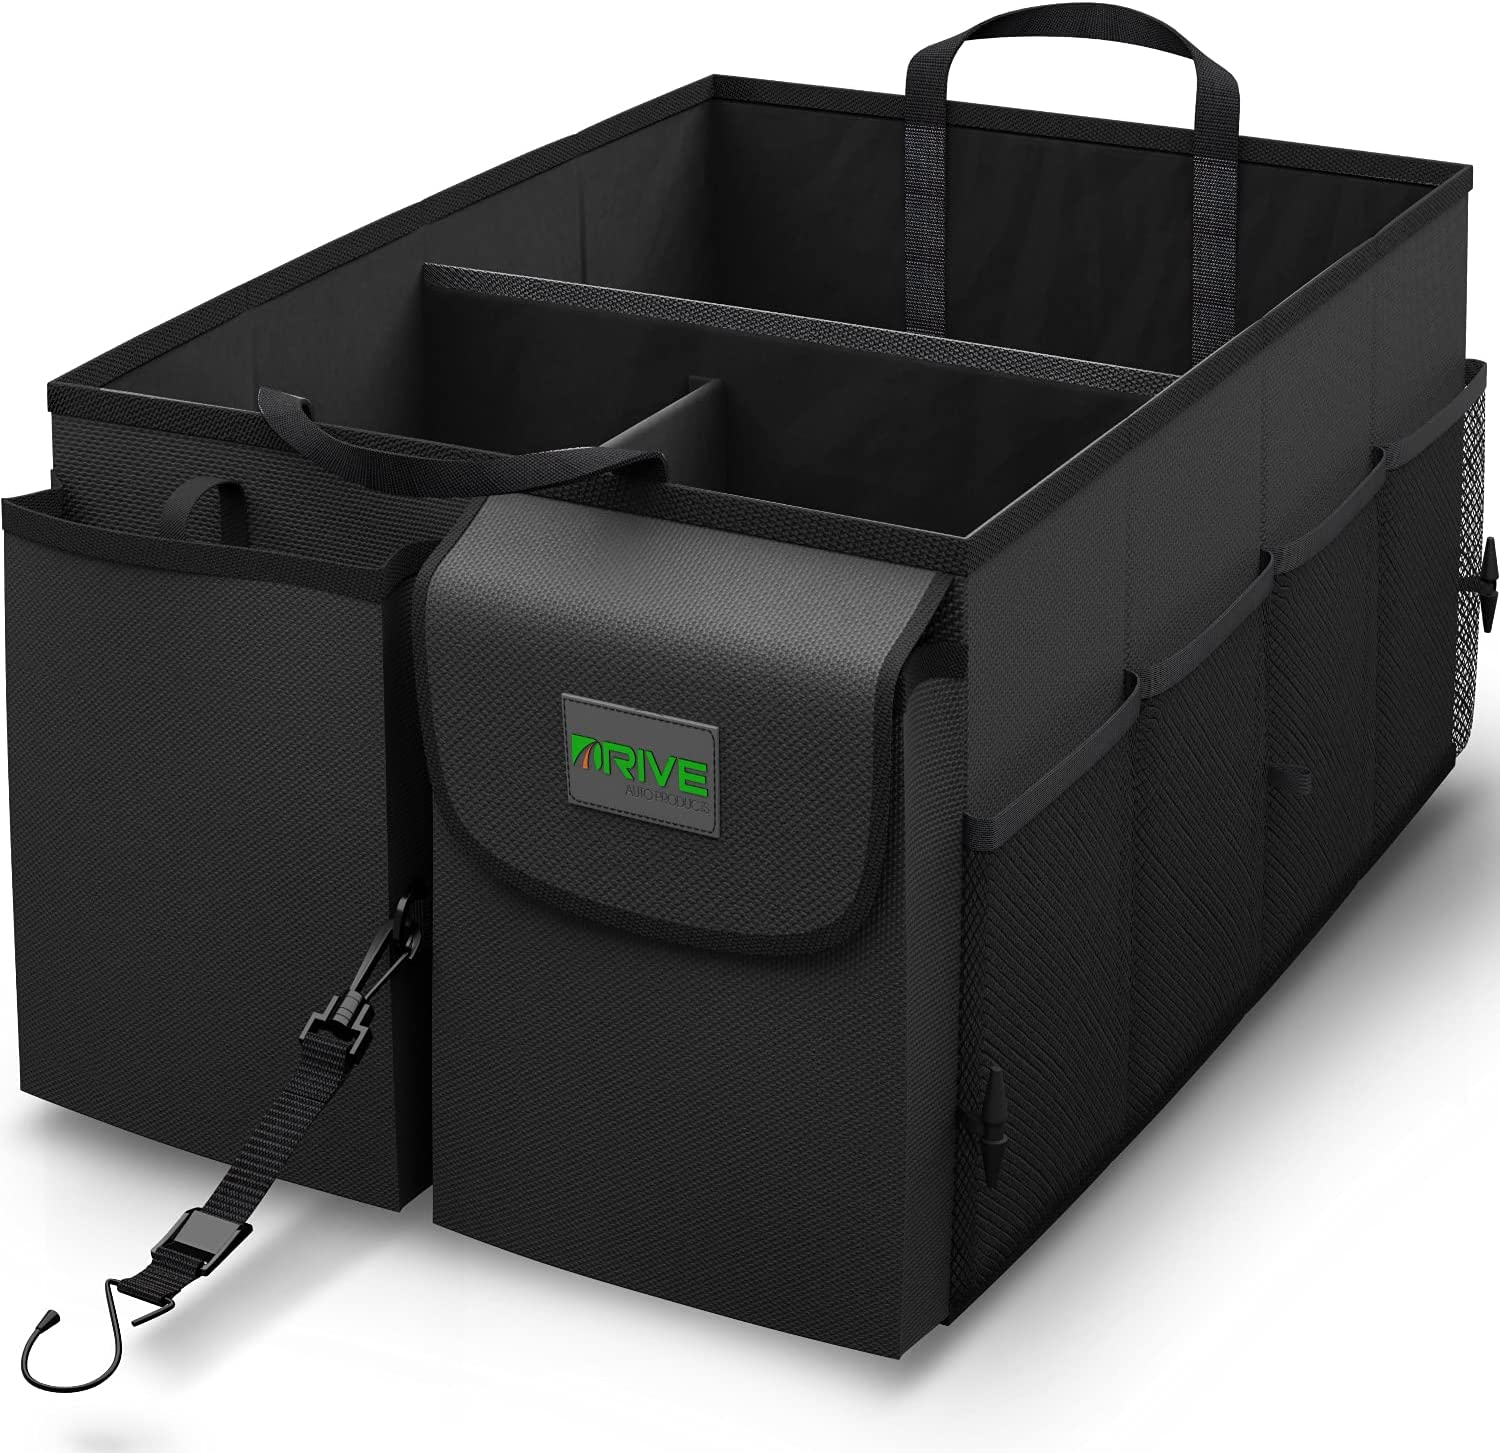 Drive Auto Trunk Trust Organizers and - Storage Collapsible Easy-to-use Multi-Comp